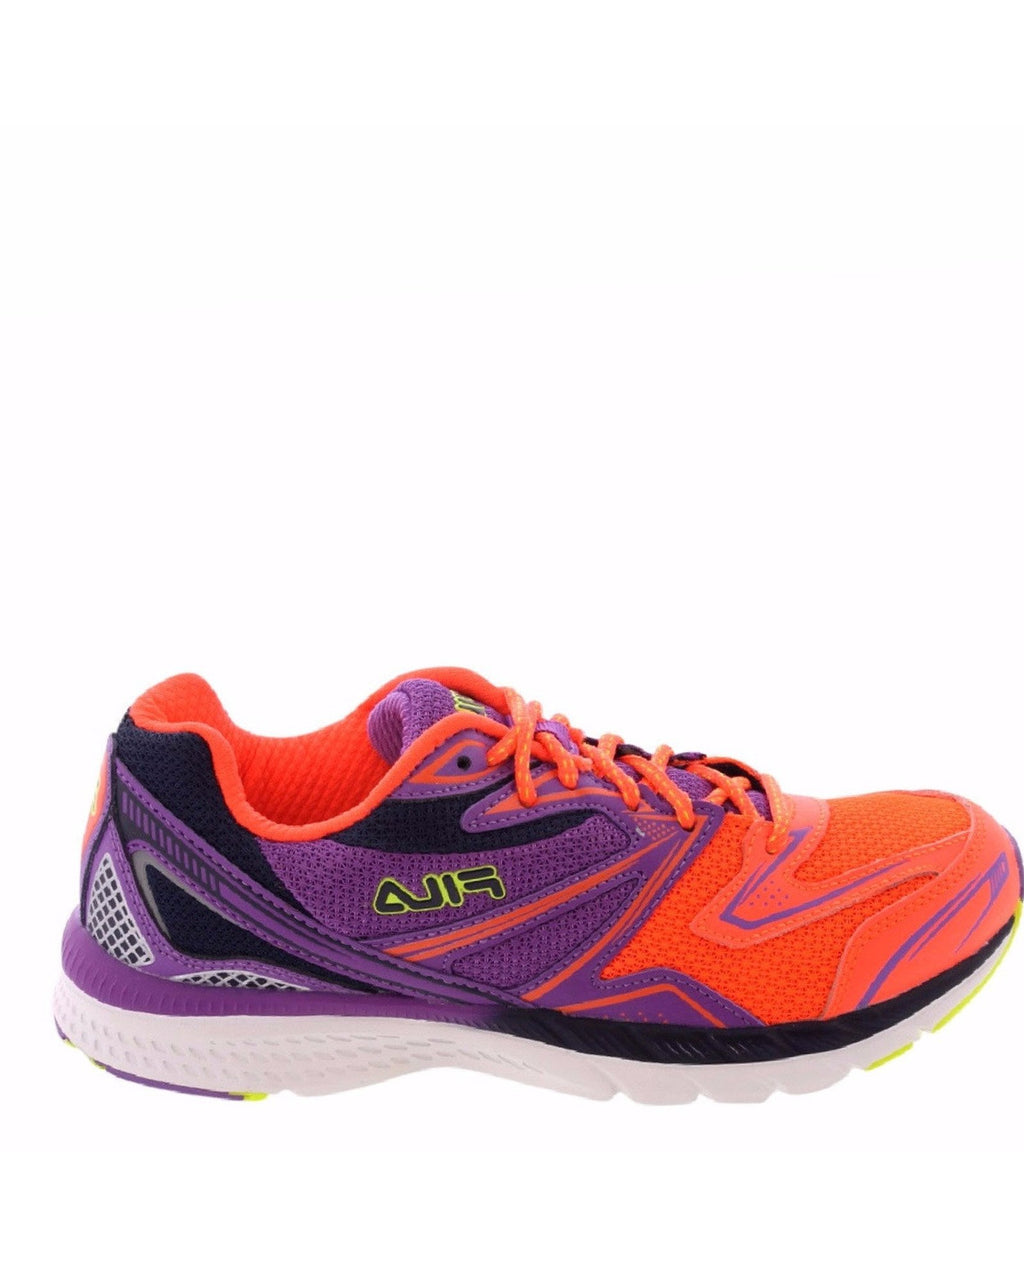 Women's Memory Armitage Athletic Sneakers